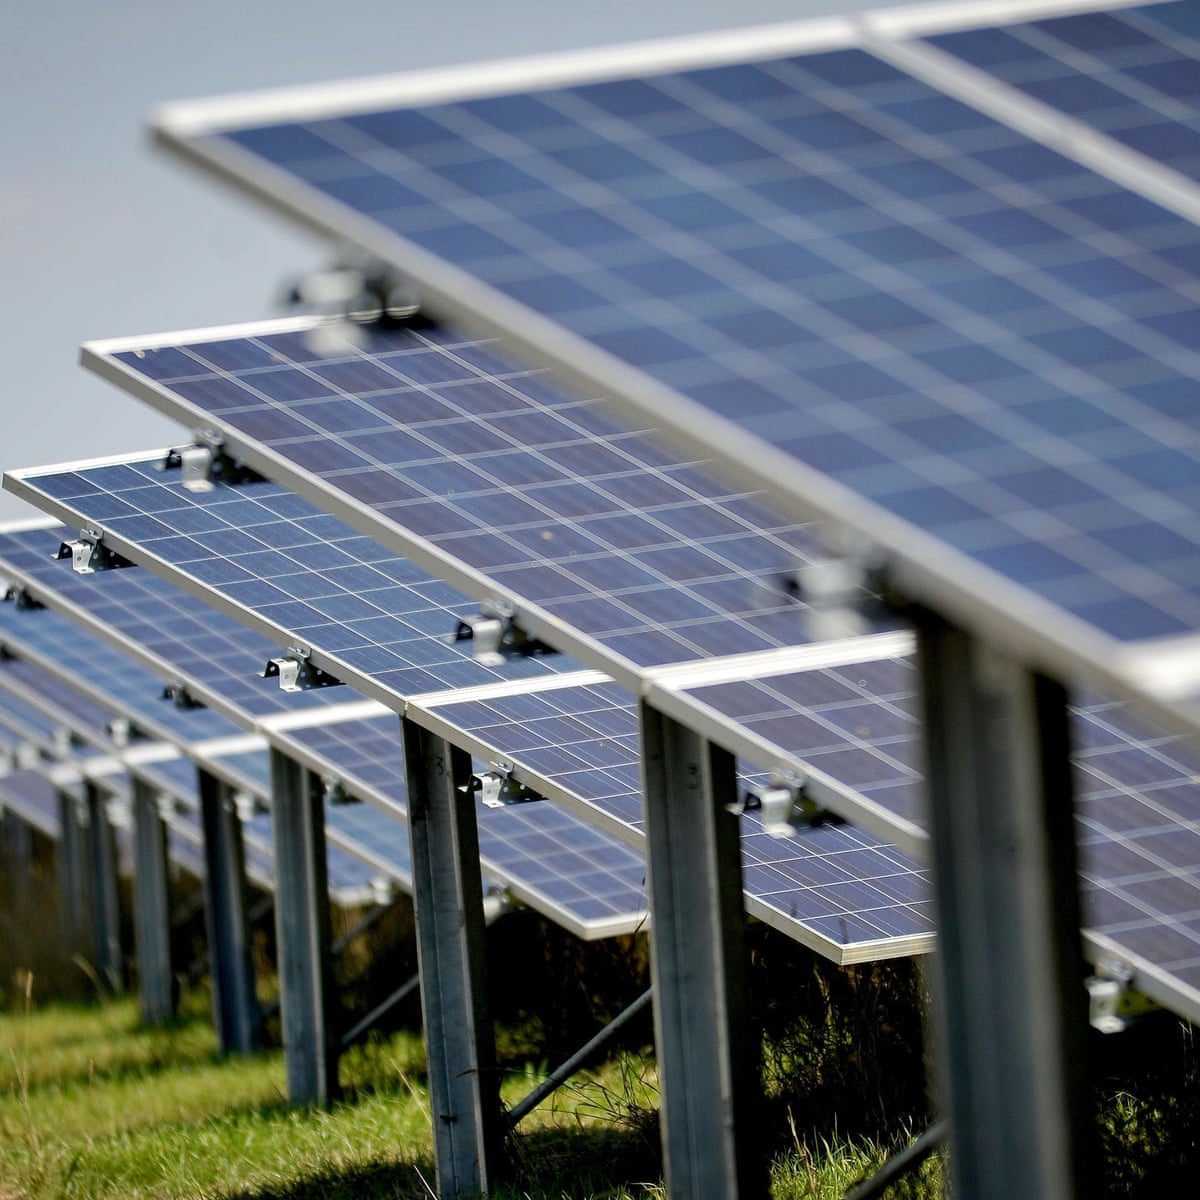 Solar Energy Sector Lost 8 000 Jobs In Us Last Year But Future Looks Bright Report Solar Power The Guardian